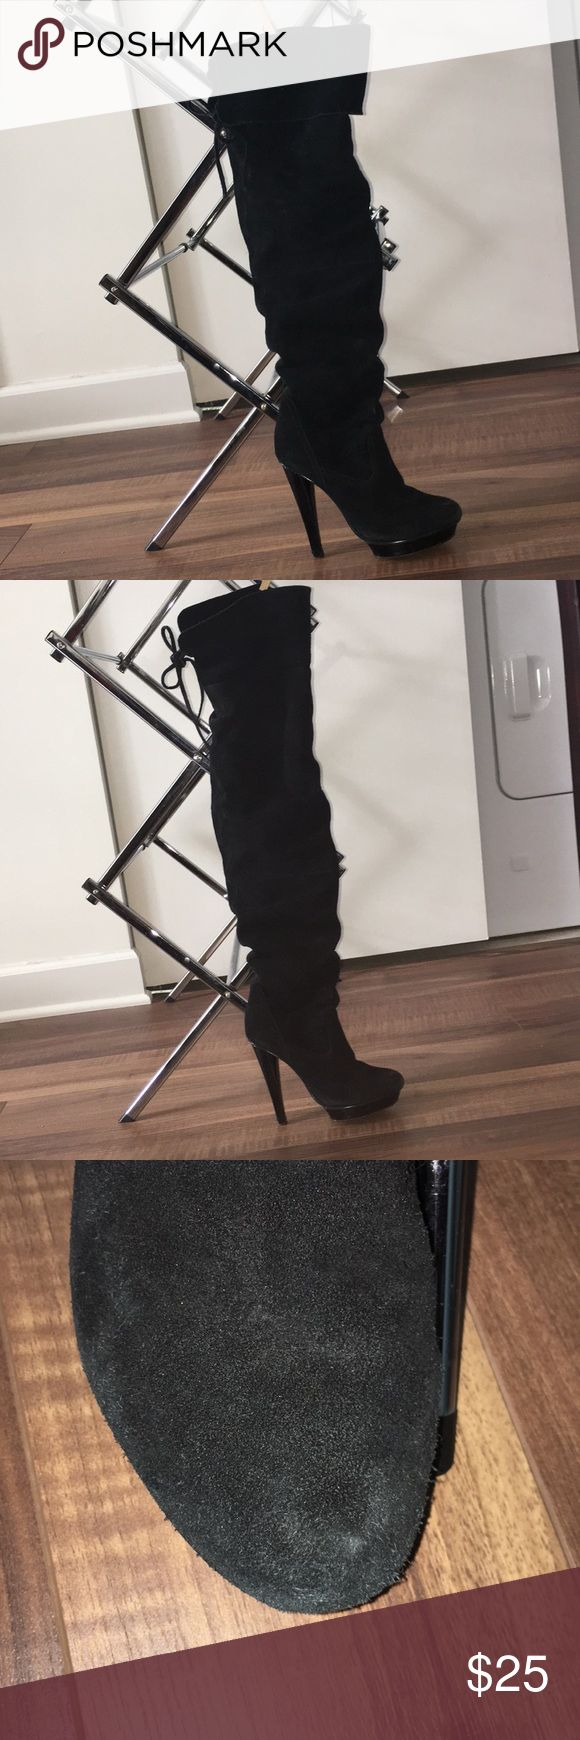 """Steve Madden over the knee boots Chic black suede over the knee boots with back tie. Can be worn 2 ways. Top part can be folded over or worn straight for a higher over the knee look. Does have signs of wear. Please see pictures. When wearing cannot notice the signs of wear. Great trendy boot that has already been broken in! 5in heel  1"""" platform 20"""" shaft with flap folded over  24.5"""" shaft fully extended Steve Madden Shoes Over the Knee Boots"""